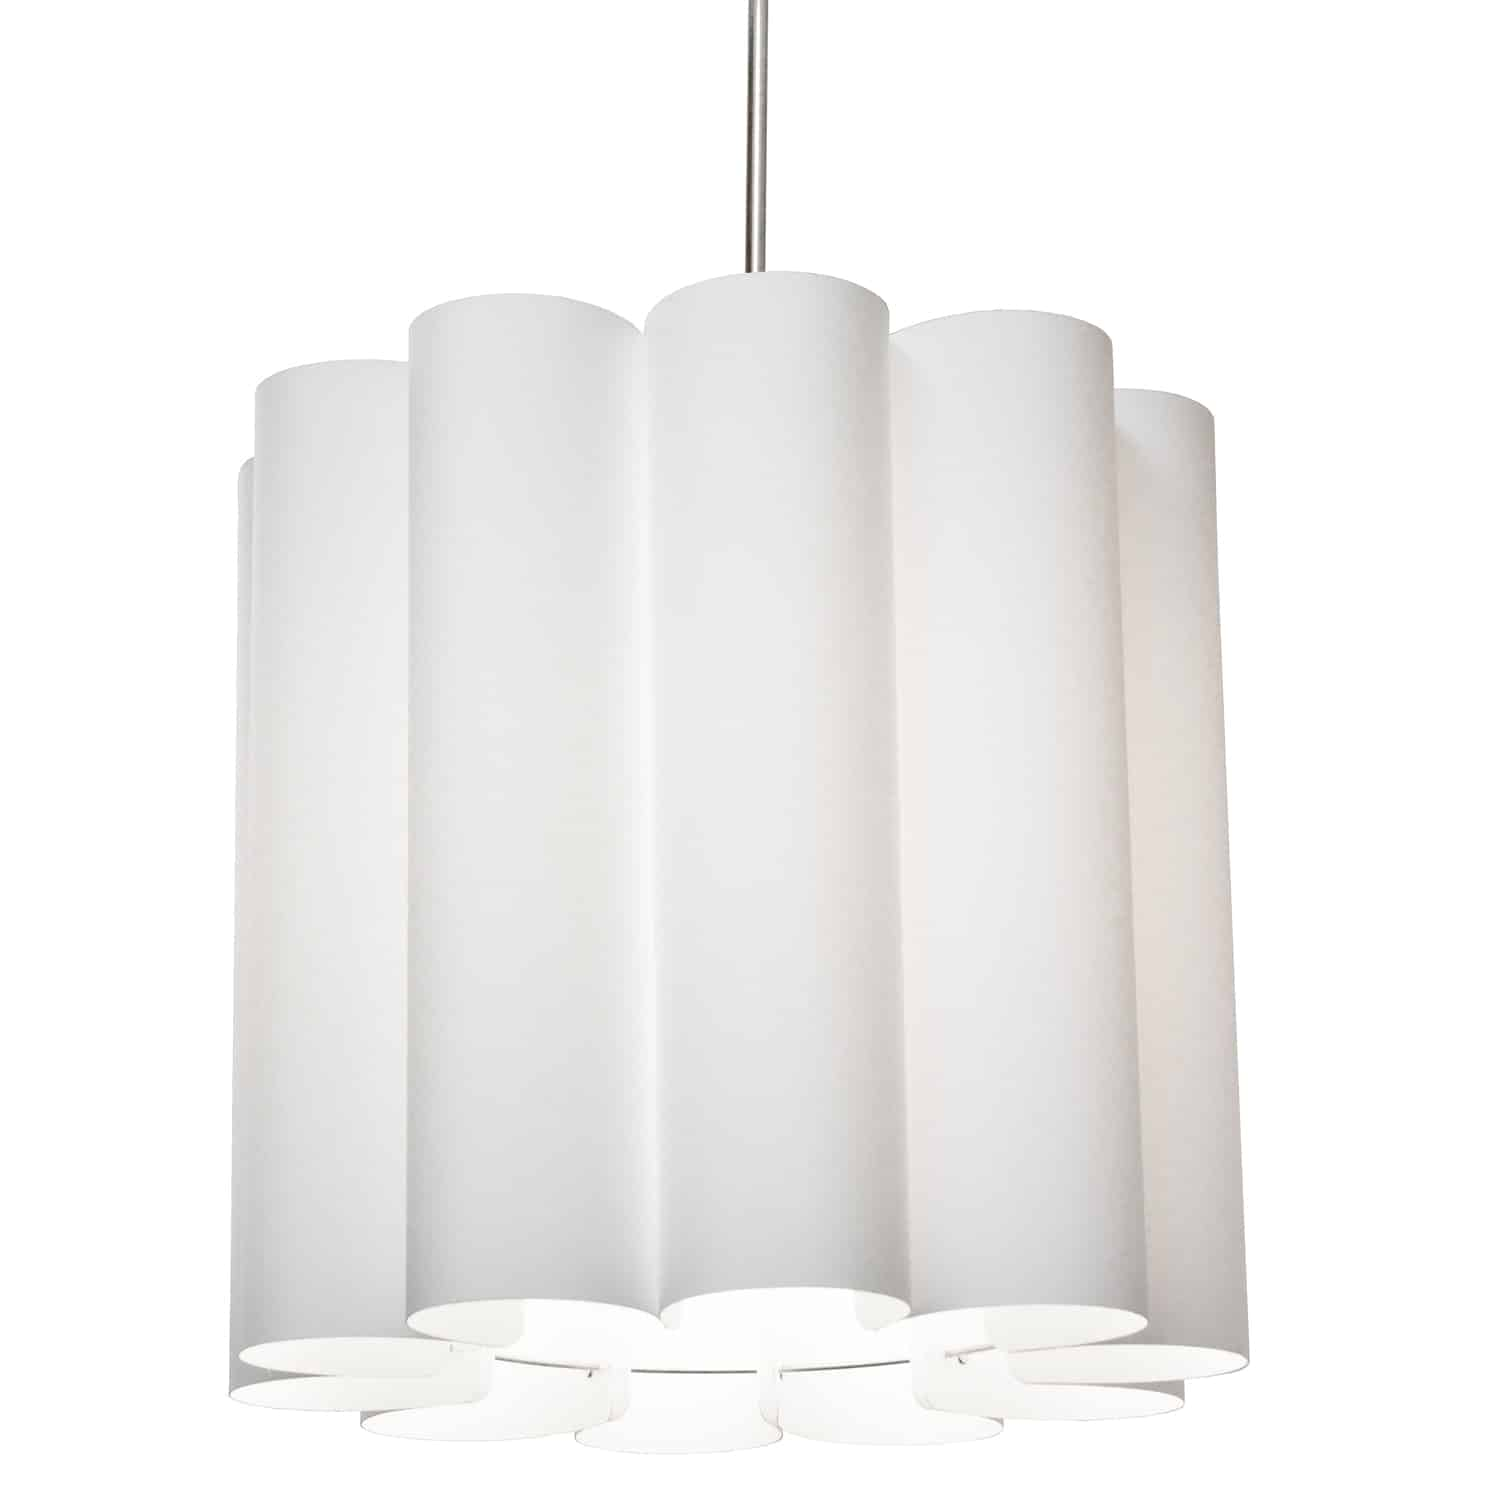 1 Light Sandra Pendant JTone White, Polished Chrome